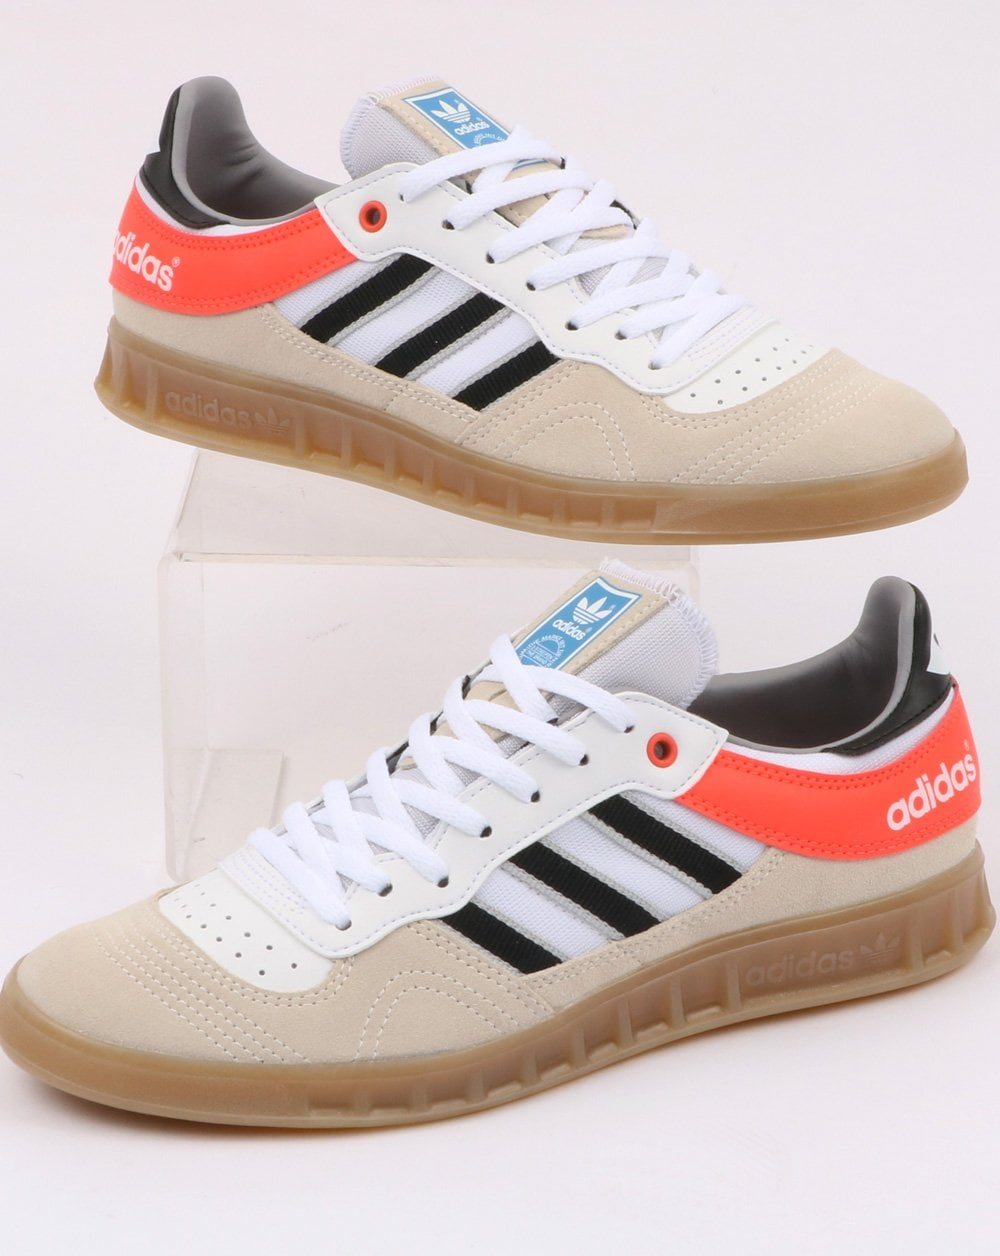 Adidas Handball Top Trainers WhiteBlackSolar Red